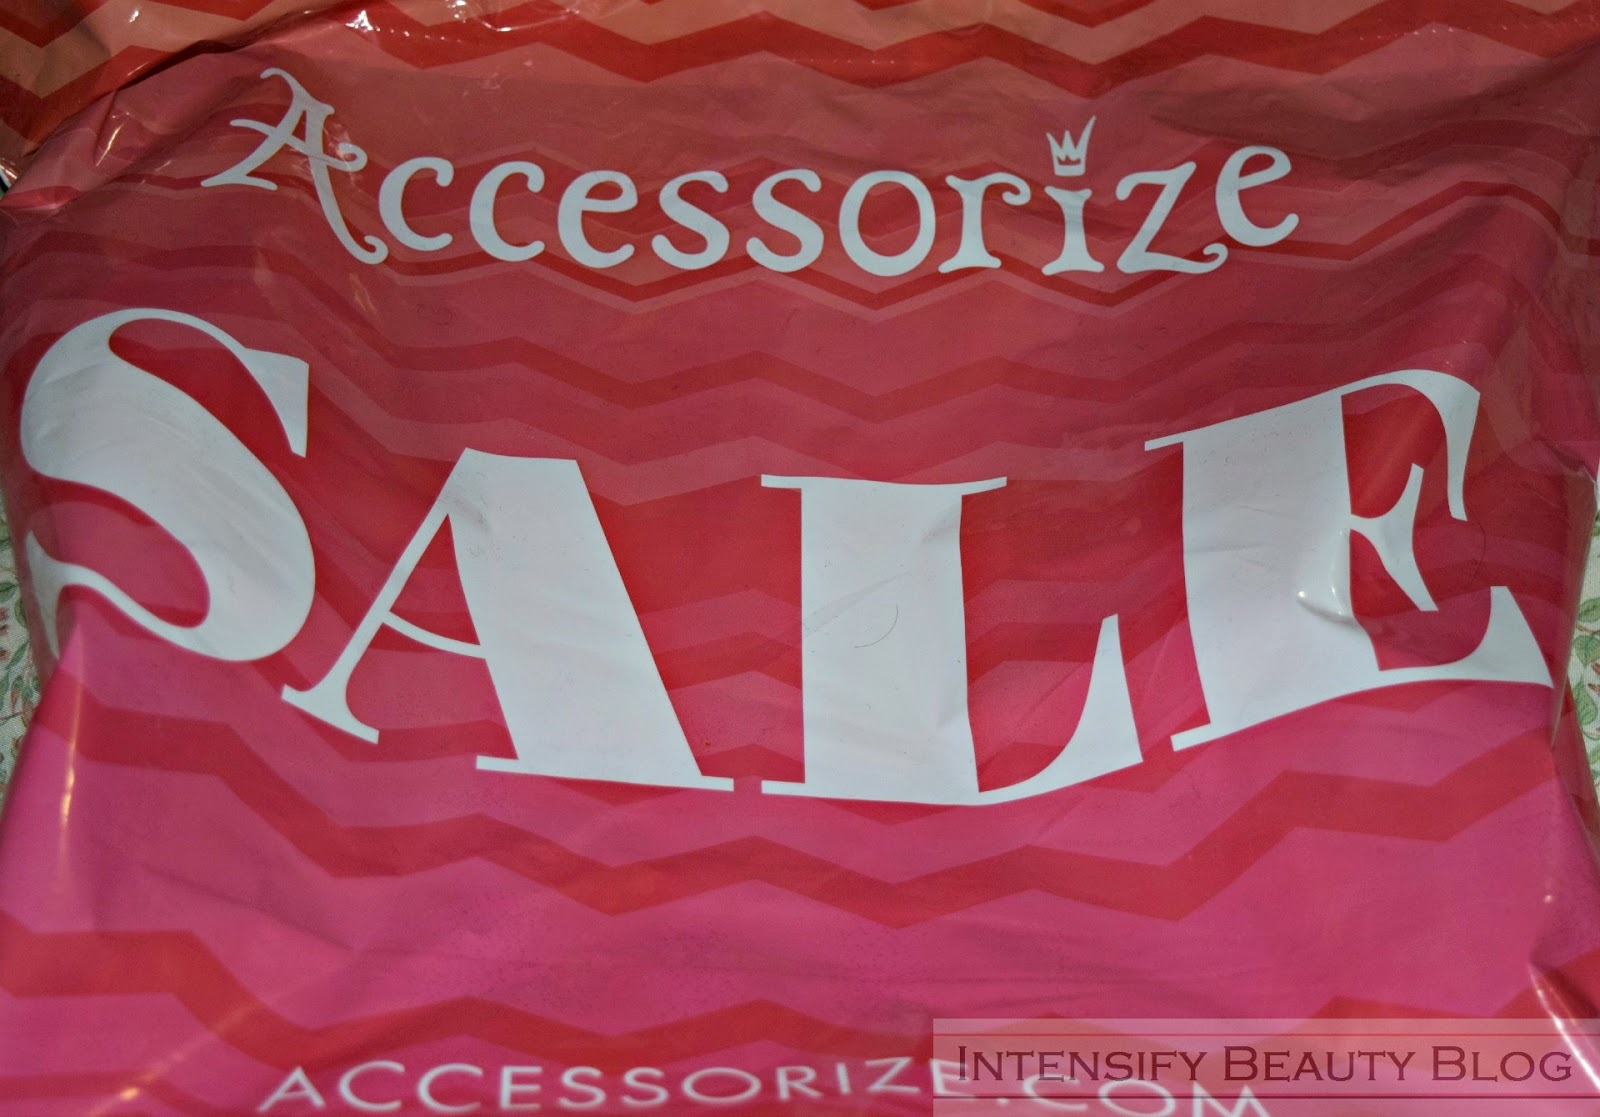 Monsoon Accessorize Sale Related Keywords & Suggestions - Monsoon ...